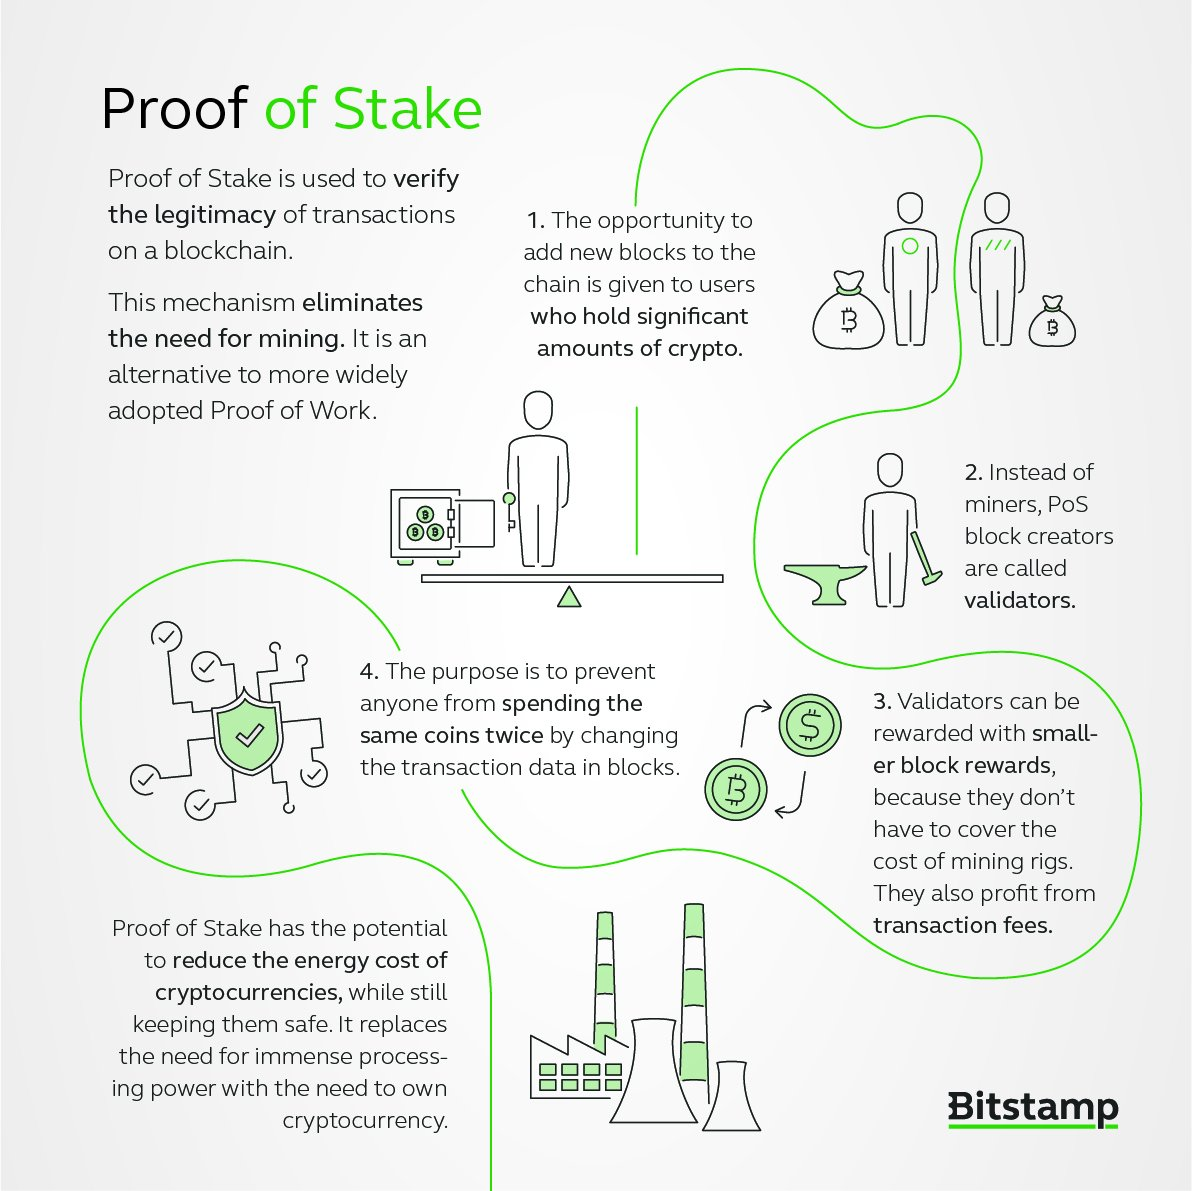 RT @Bitstamp: FOLLOW THE LINE: Proof of Stake ???? #cryptobasics #blockchain https://t.co/KTfCZwTtKv